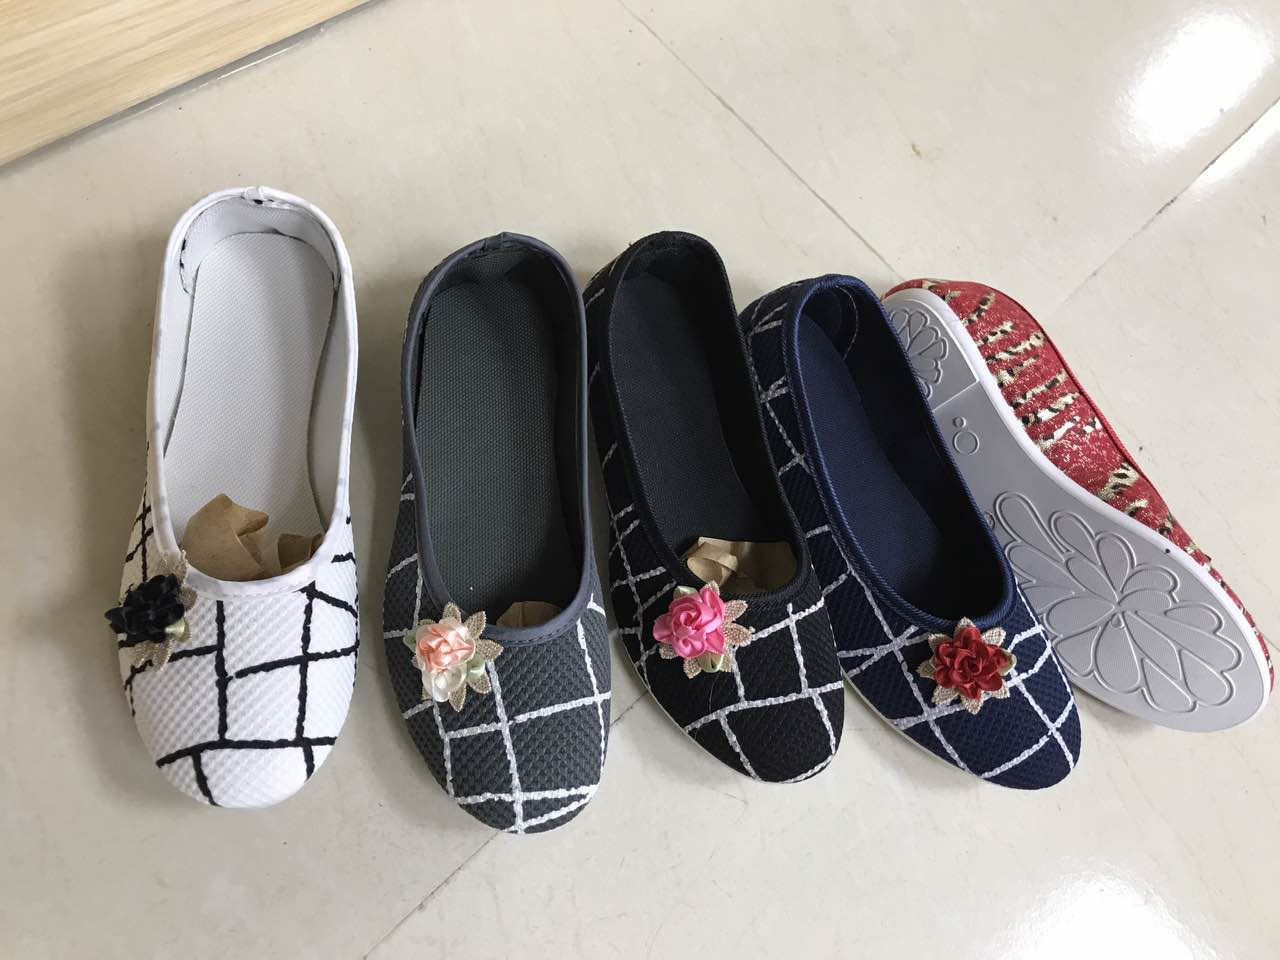 Cloth Shoes for Women Leisure Shoes Fashion Knitting Flat Breathable